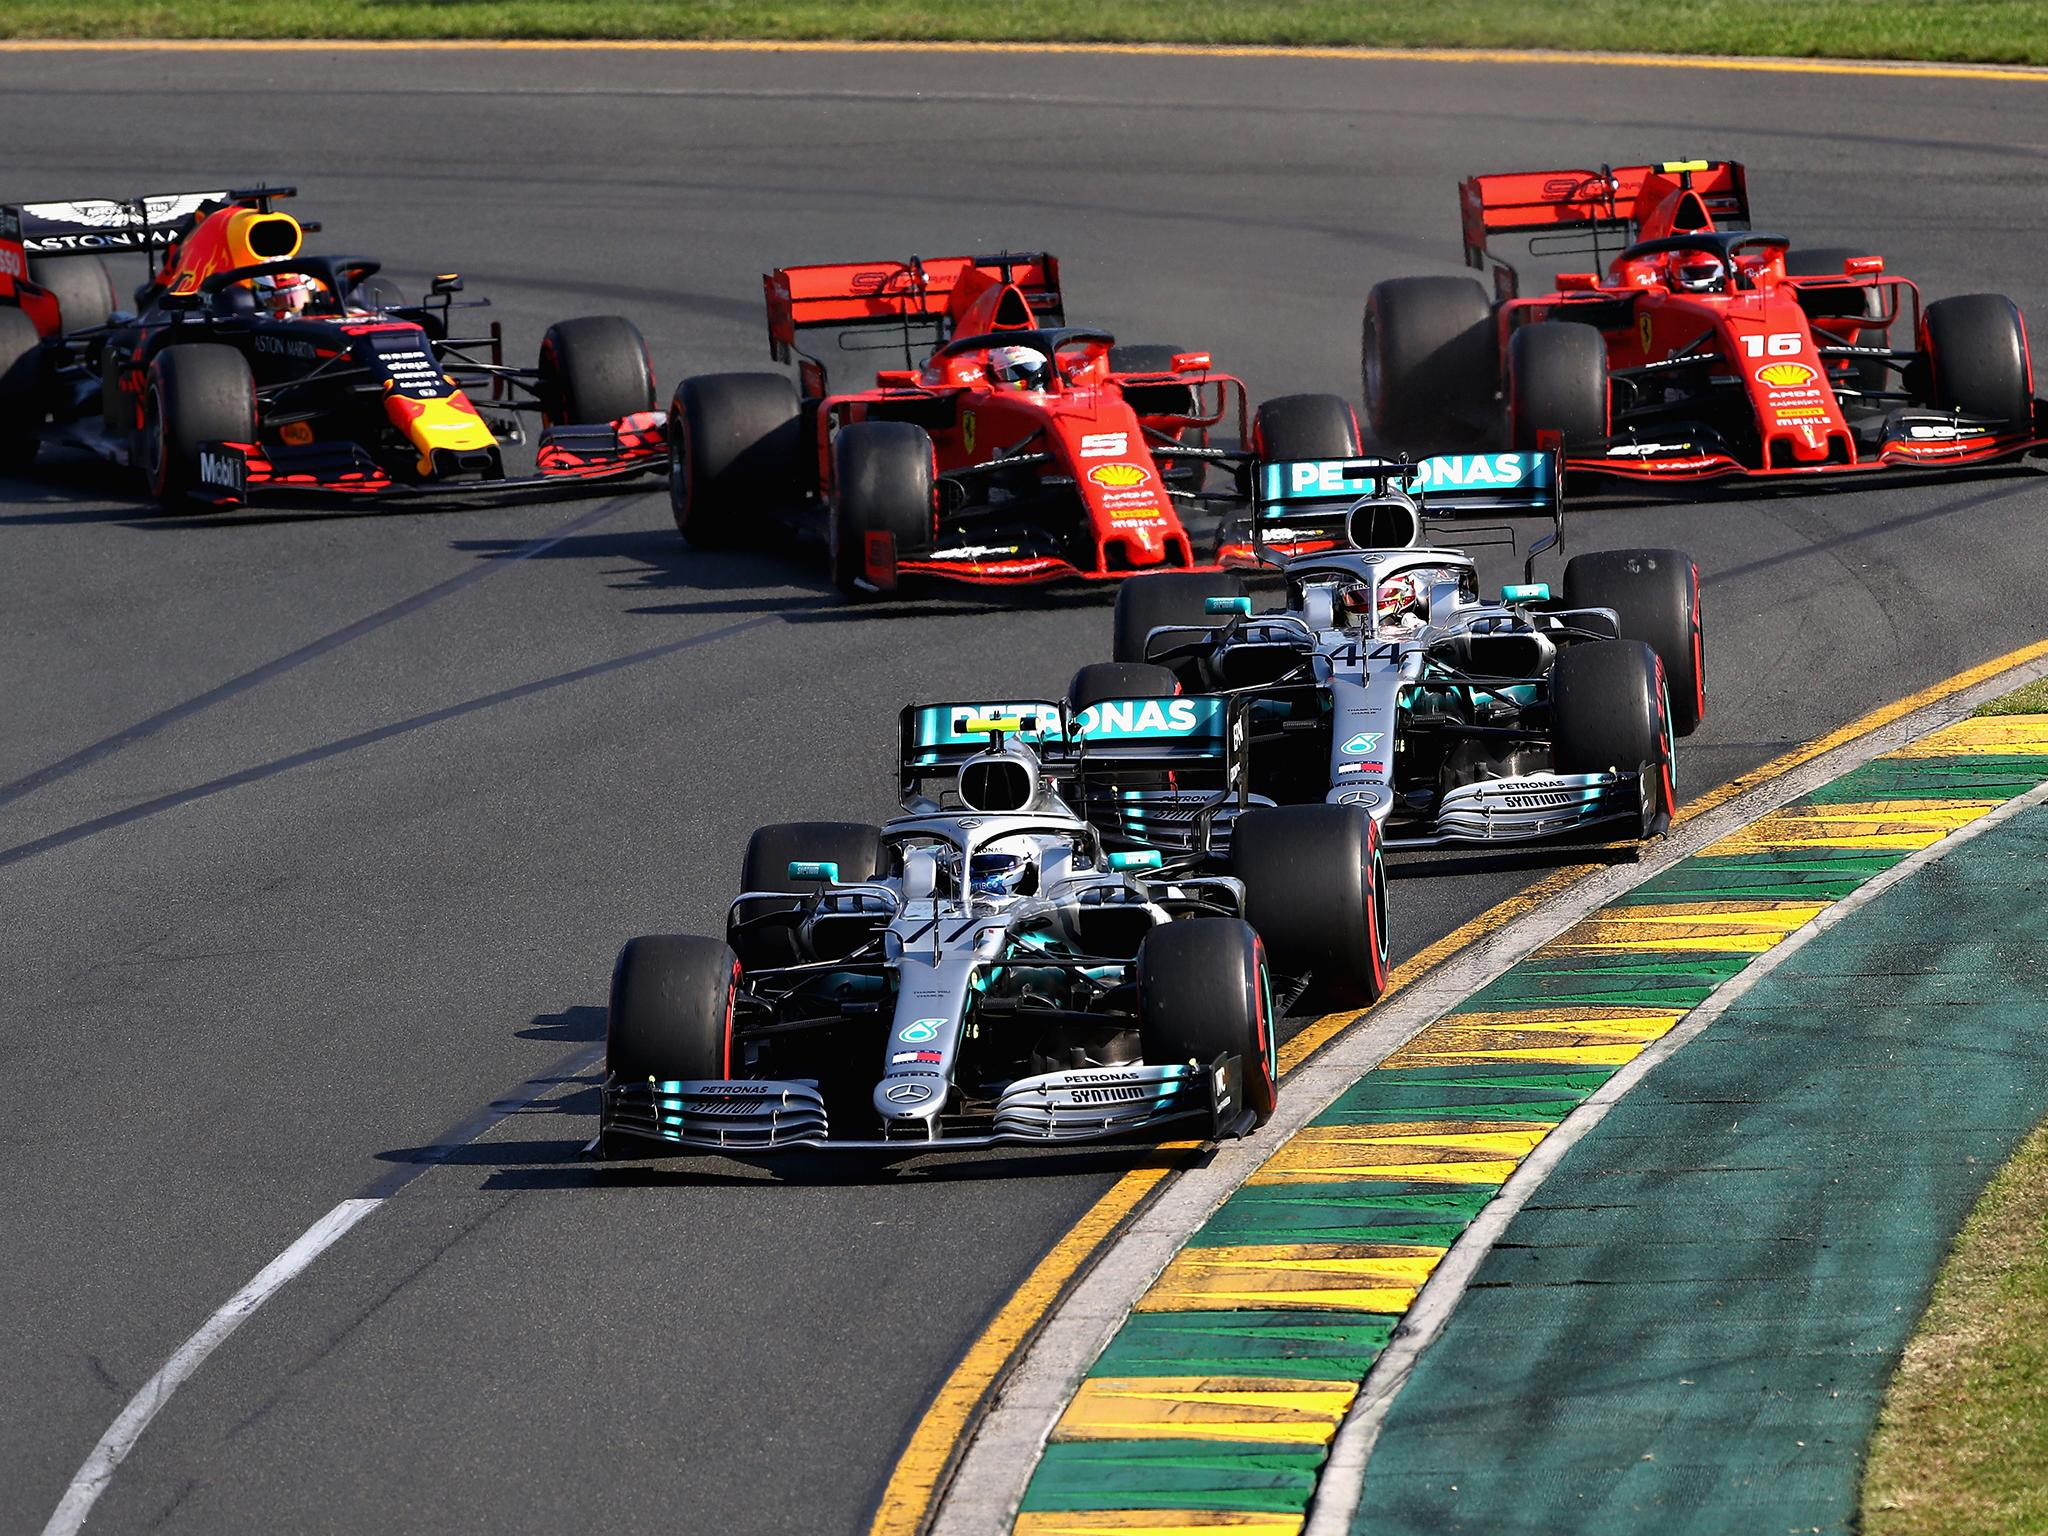 F1 2020 calendar: Formula One reveals gruelling 22-race schedule with seven back-to-back weekends